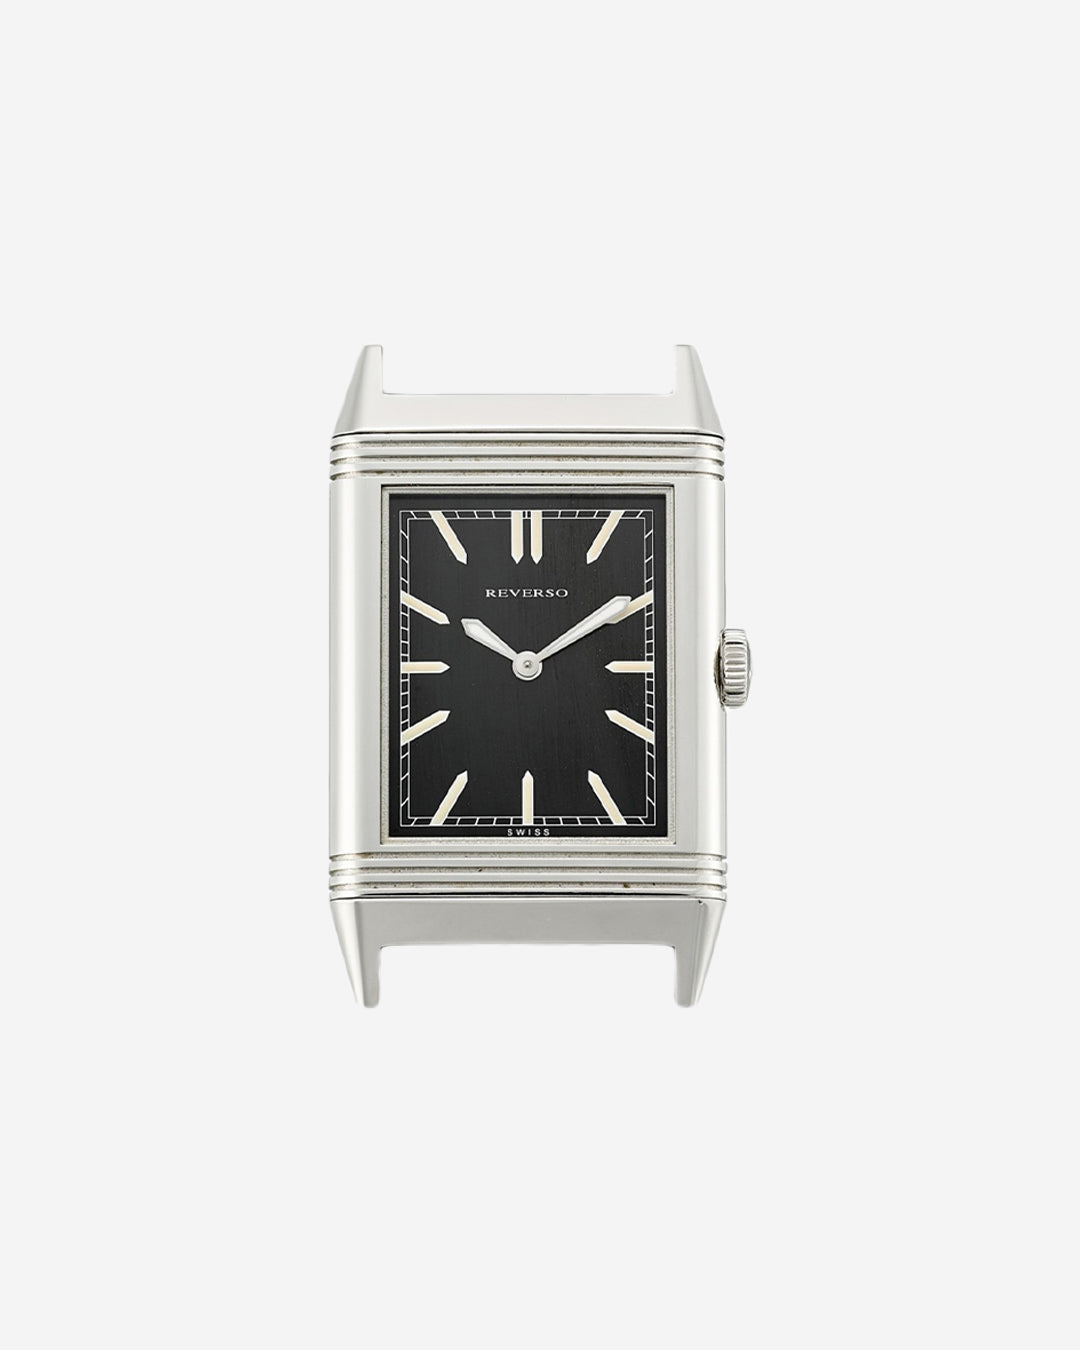 jaeger-LeCoultre Reverso tribute to original from 1931 made in 2011 watchmaking in times of crisis A Collected Man London